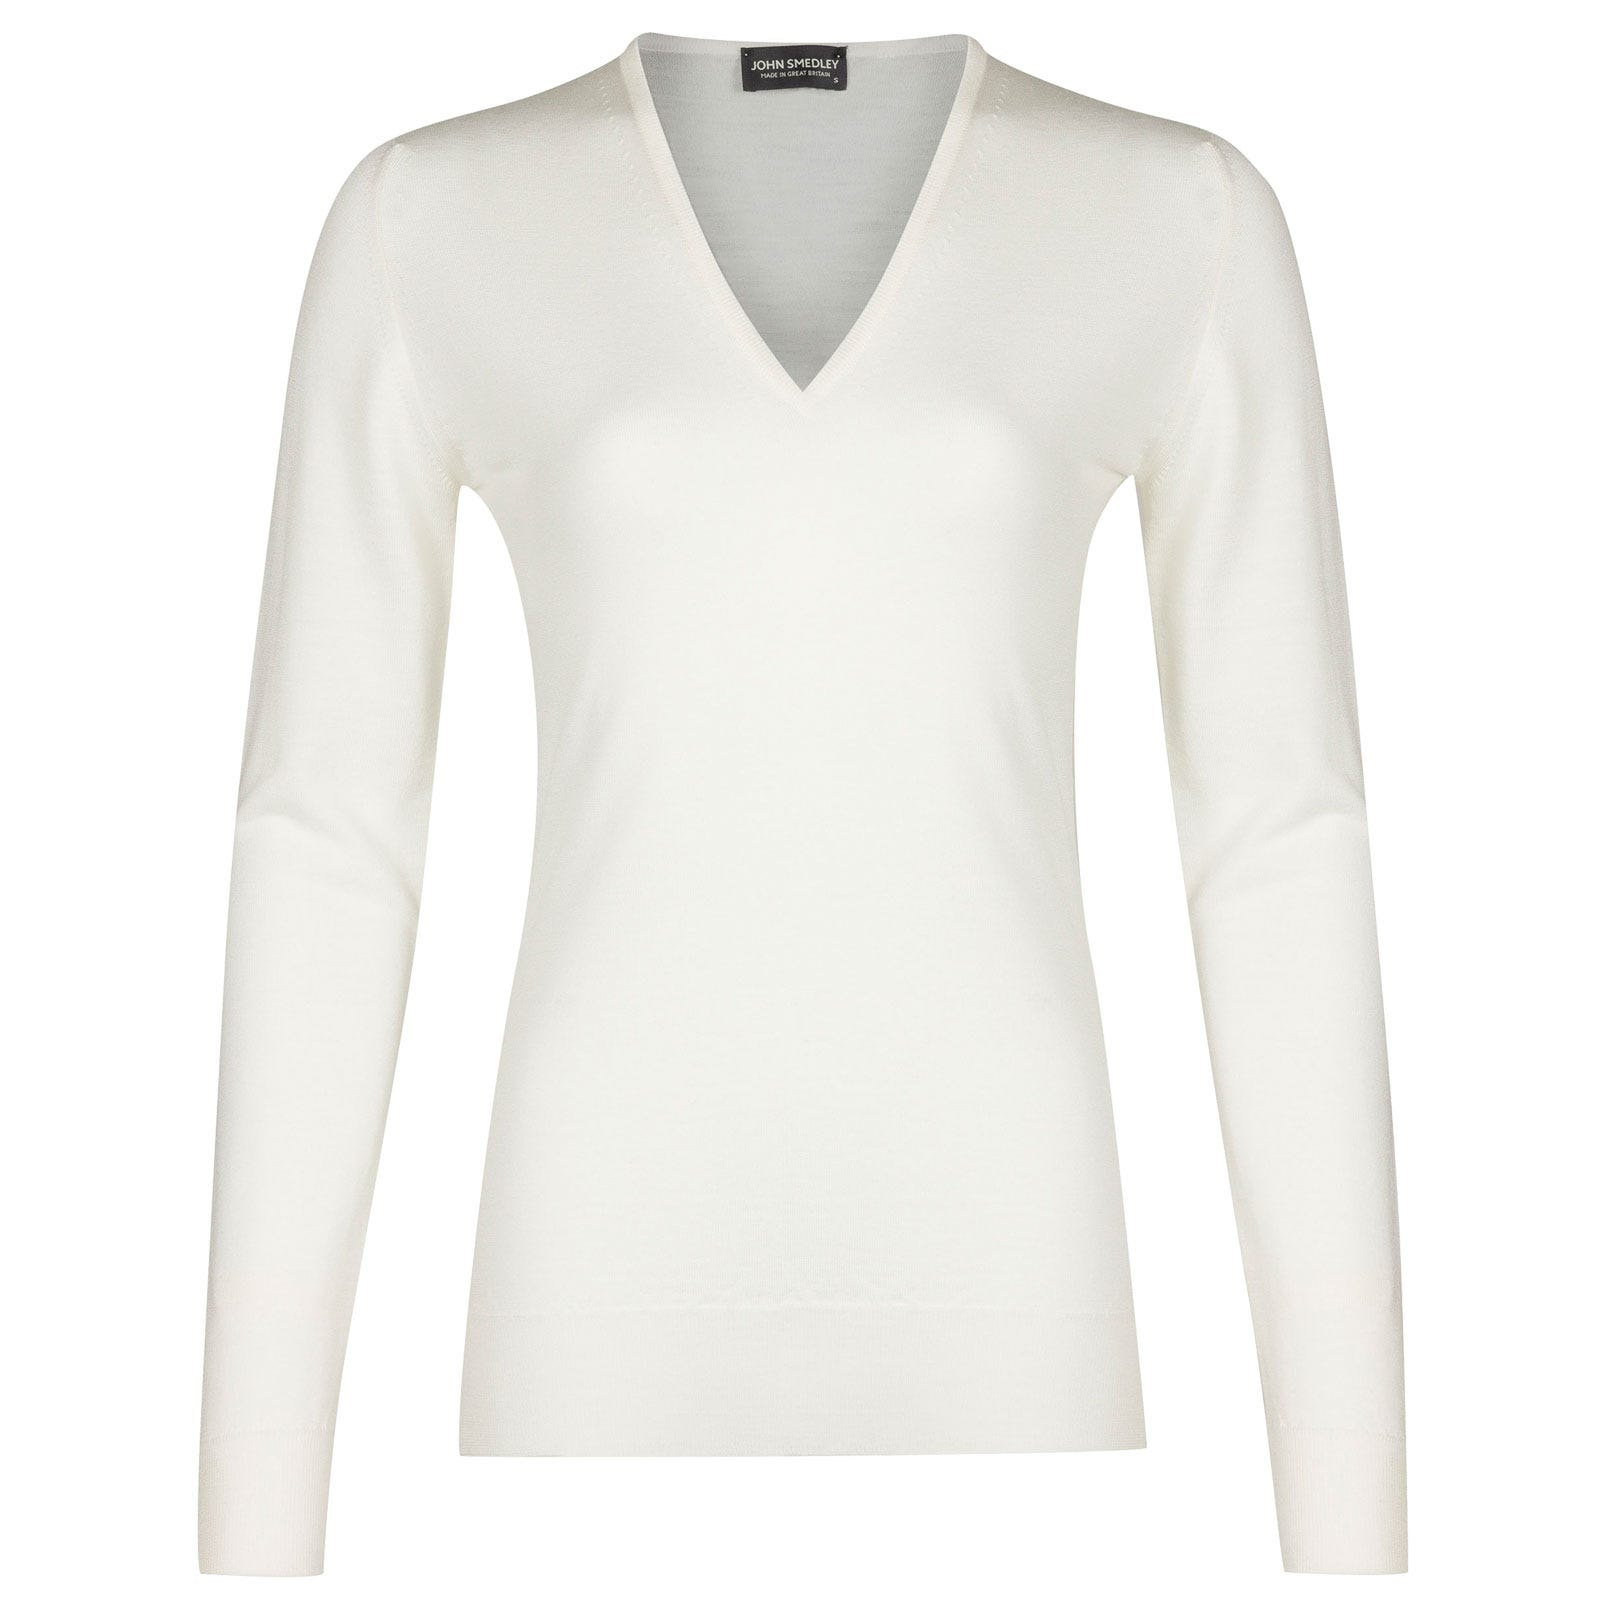 John Smedley Orchid Merino Wool Sweater in Snow White-M